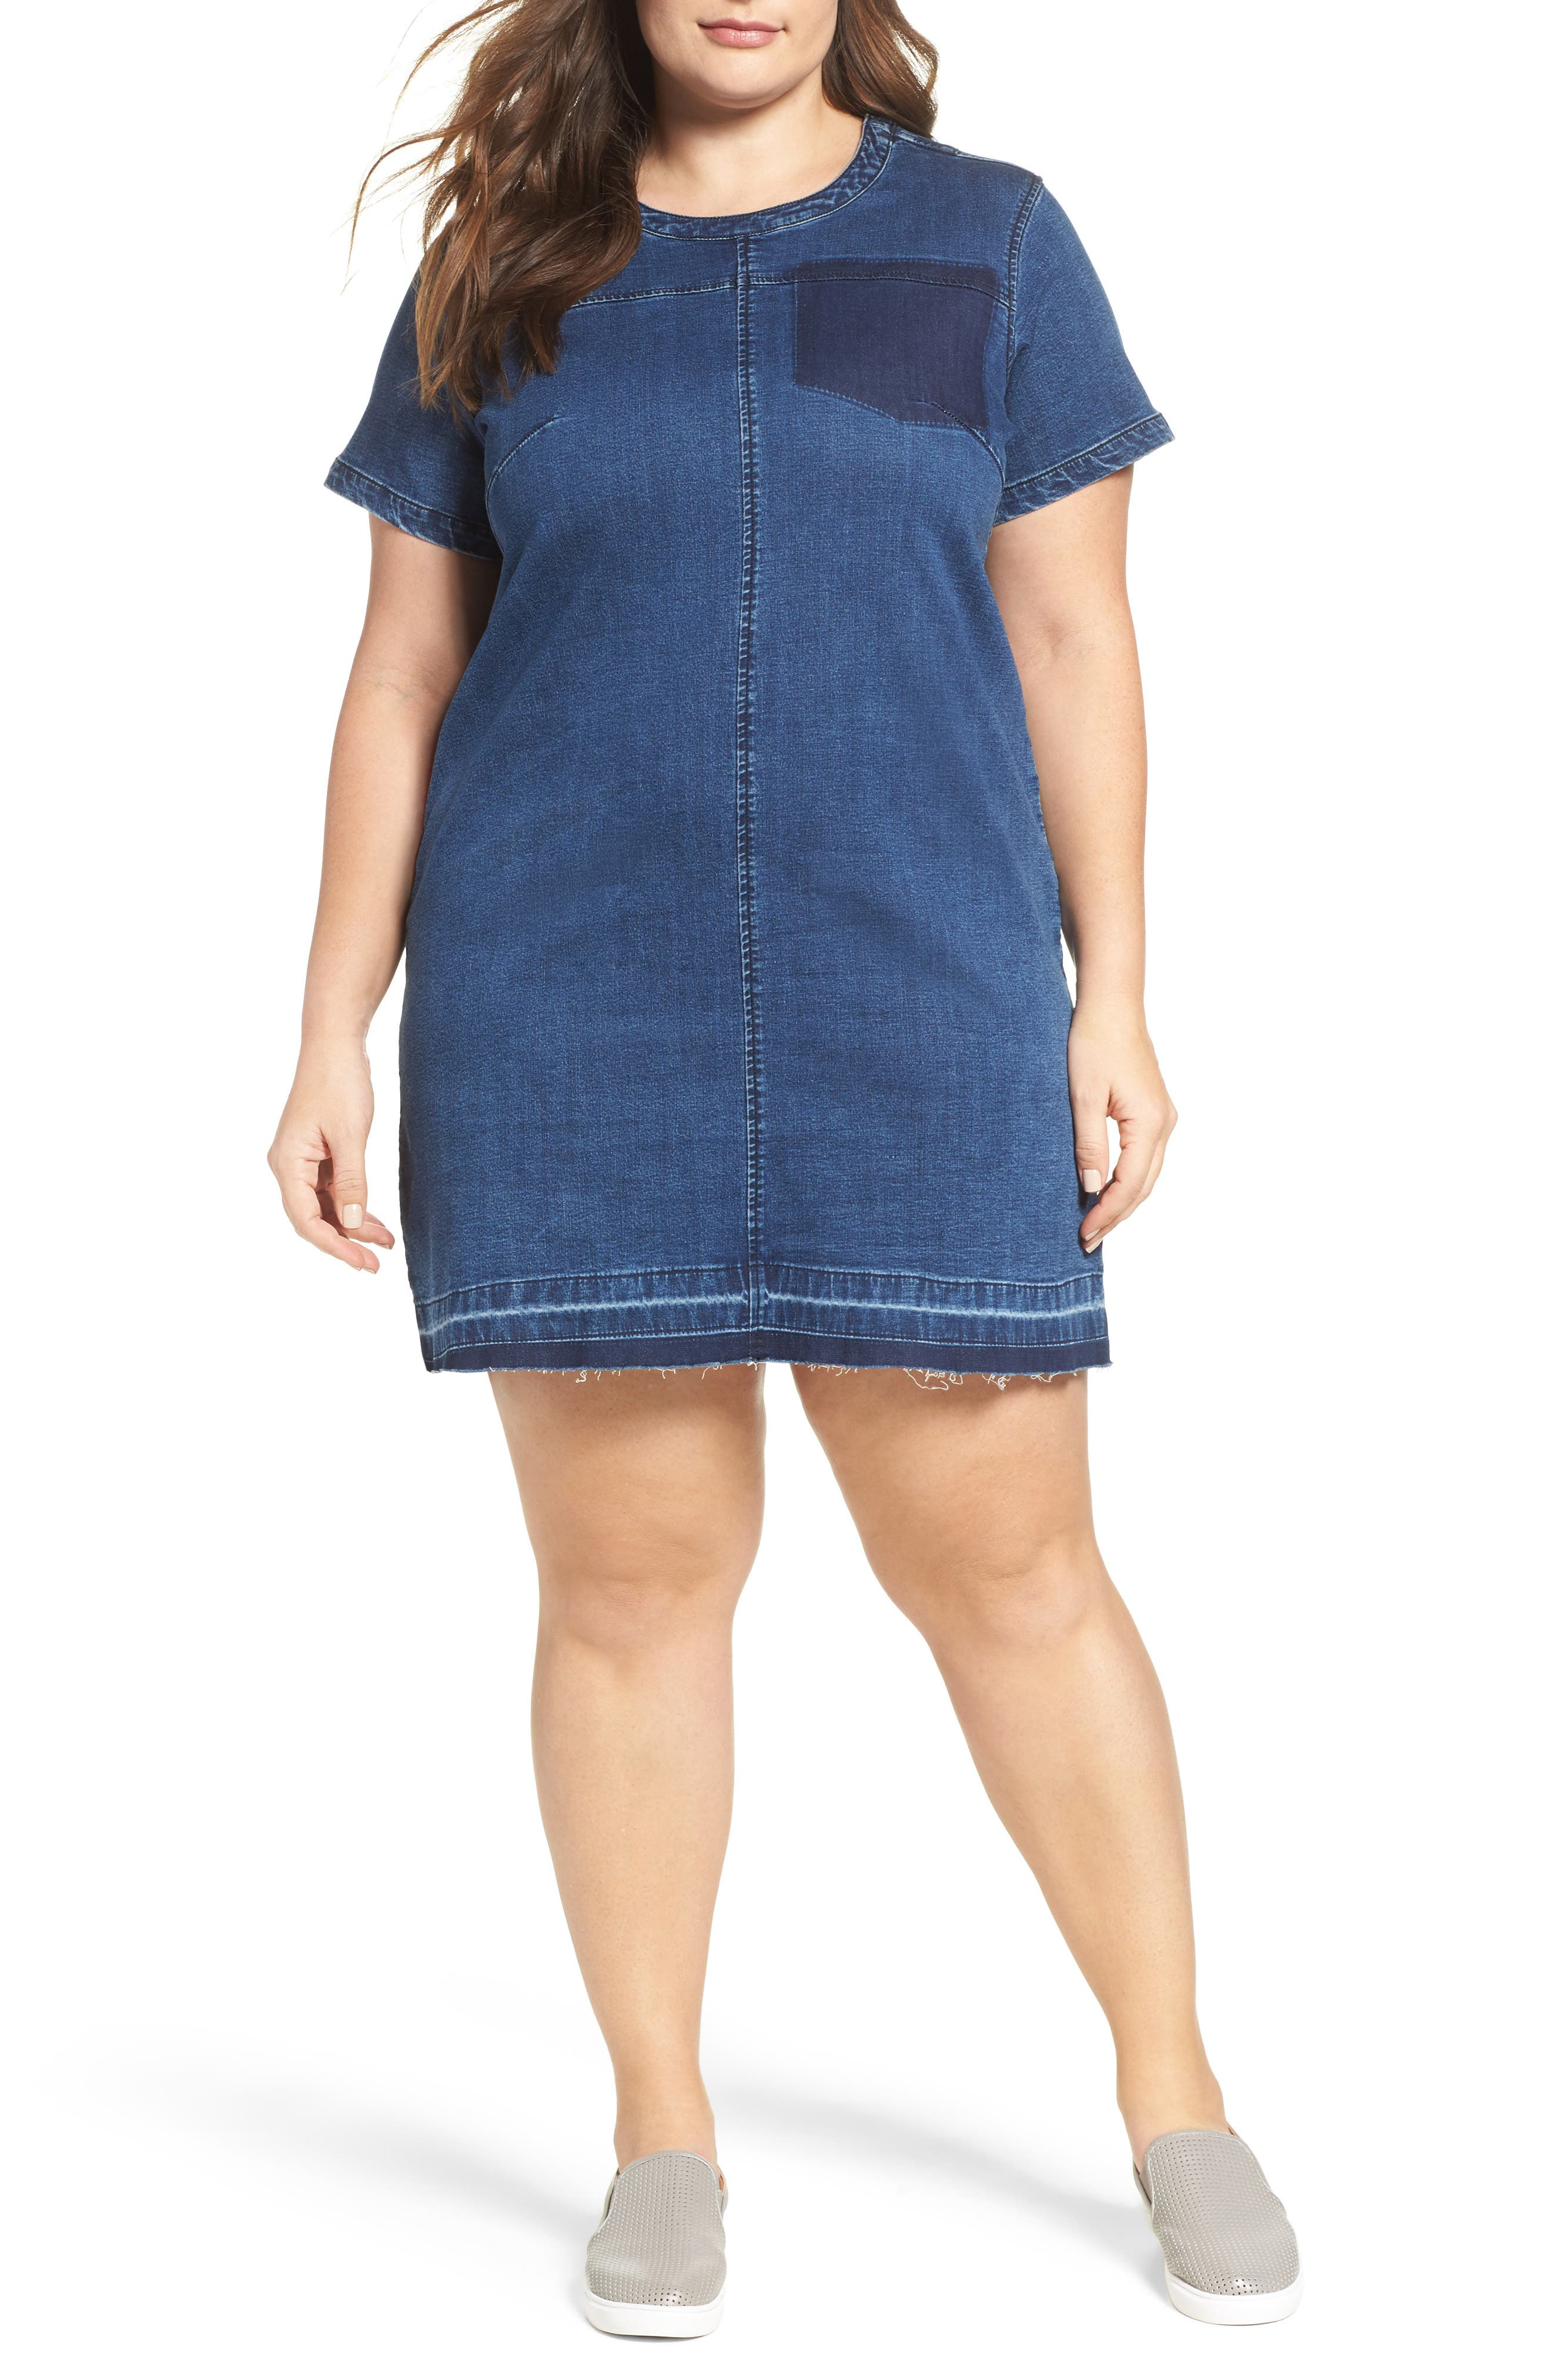 Main Image - City Chic Denim Darling Shift Dress (Plus Size)